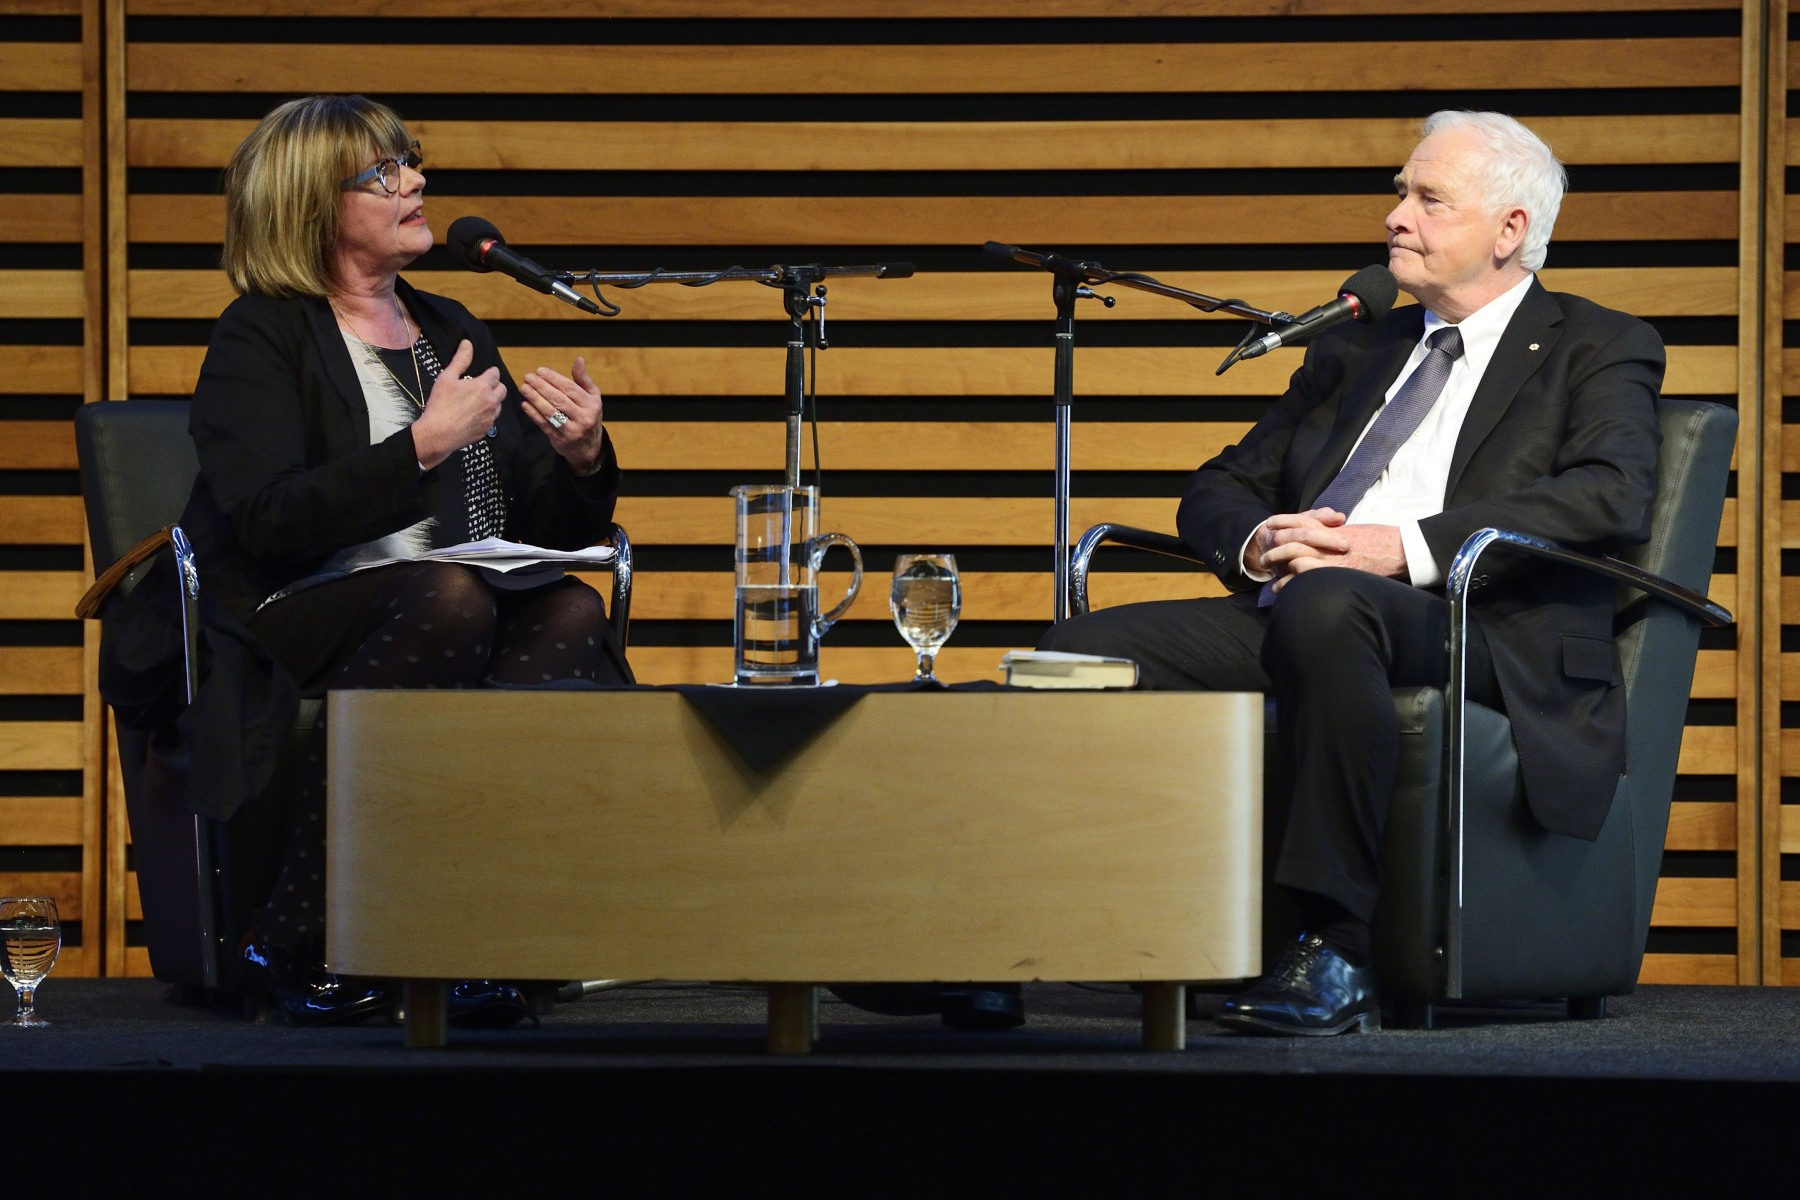 His Excellency took part in an on-stage conversation hosted by CBC Radio's Shelagh Rogers to discuss The Idea of Canada: Letters to a Nation, his book published by Signal/McClelland & Stewart.